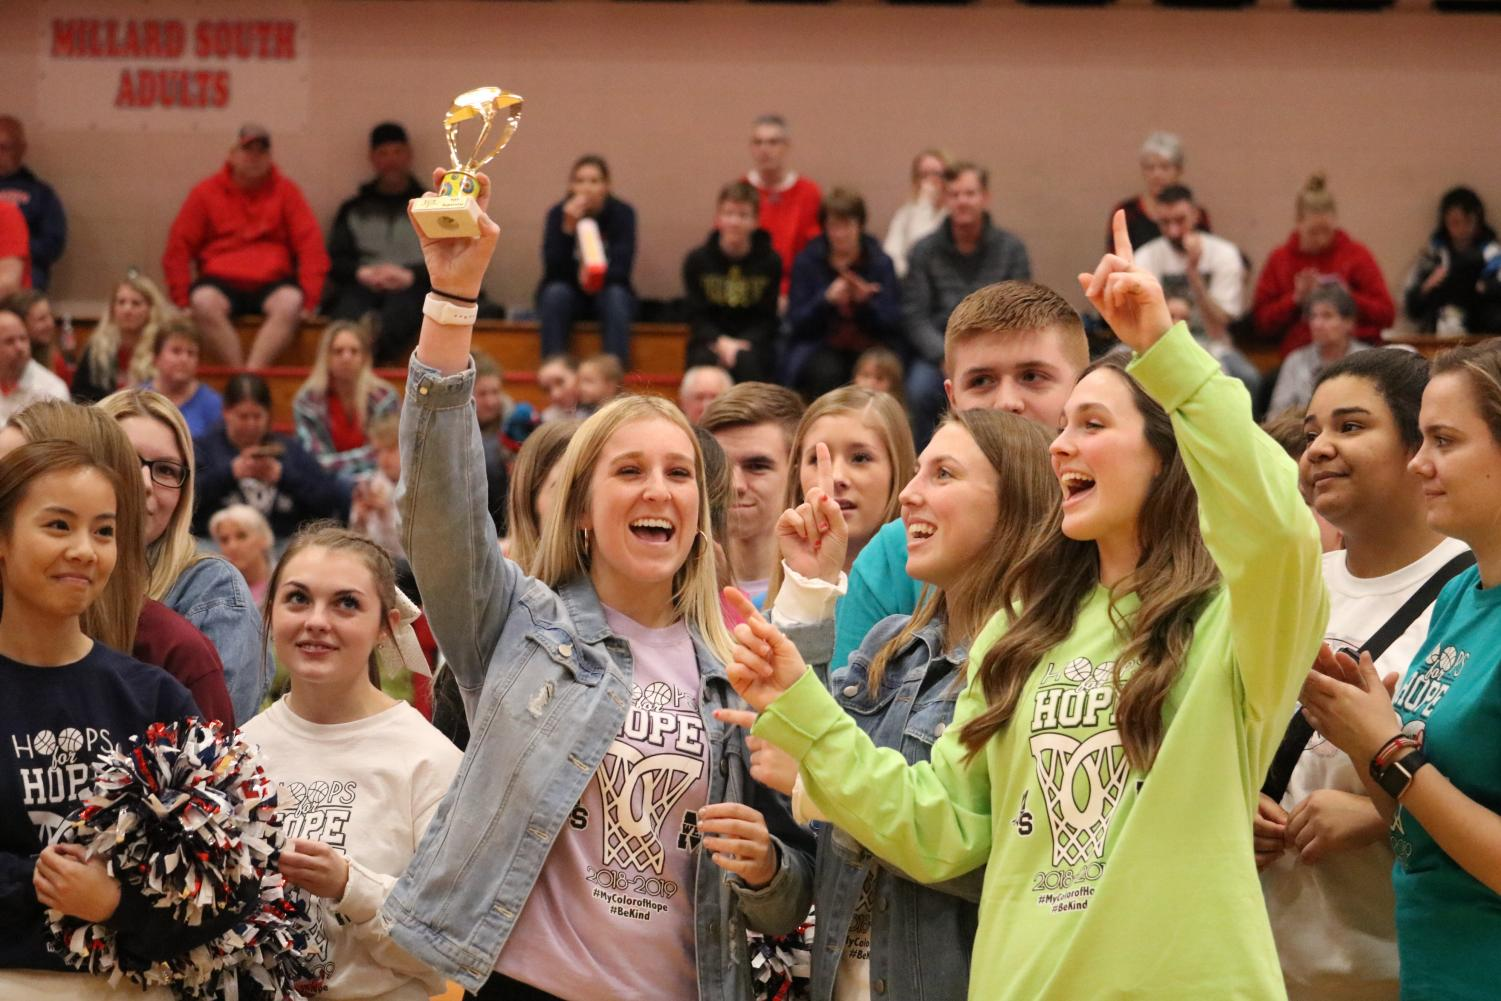 """Smiling wide, senior Chanley Forst accepts the traveling trophy. Forst is a member of Senior Class Board and volunteered to receive the trophy on behalf of Millard West for beating Millard South in a T-shirt selling contest to raise money for the American Cancer Society. """"Accepting the trophy was nerve racking because it was in front of the whole crowd at the basketball game,"""" Forst said. """"I forgot about being nervous when I was actually up there because the money we raised is for such a great cause."""""""